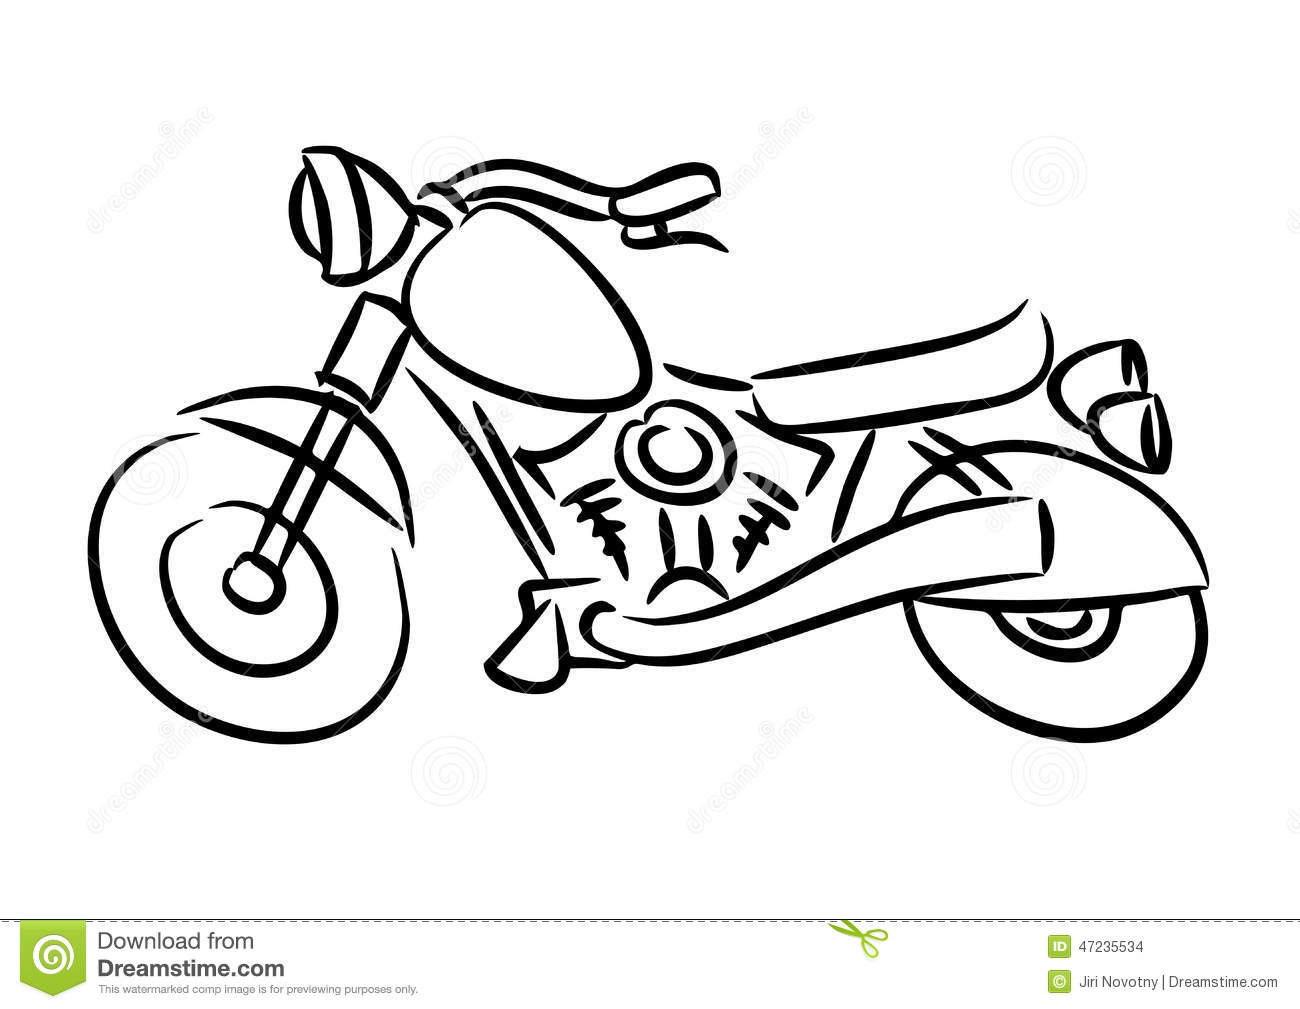 32493666528 together with 1973 Cb 125 Wiring Diagram as well Harley Davidson Logo Download moreover 566116615643067823 together with Chopper motorbike drawing. on custom motorcycles